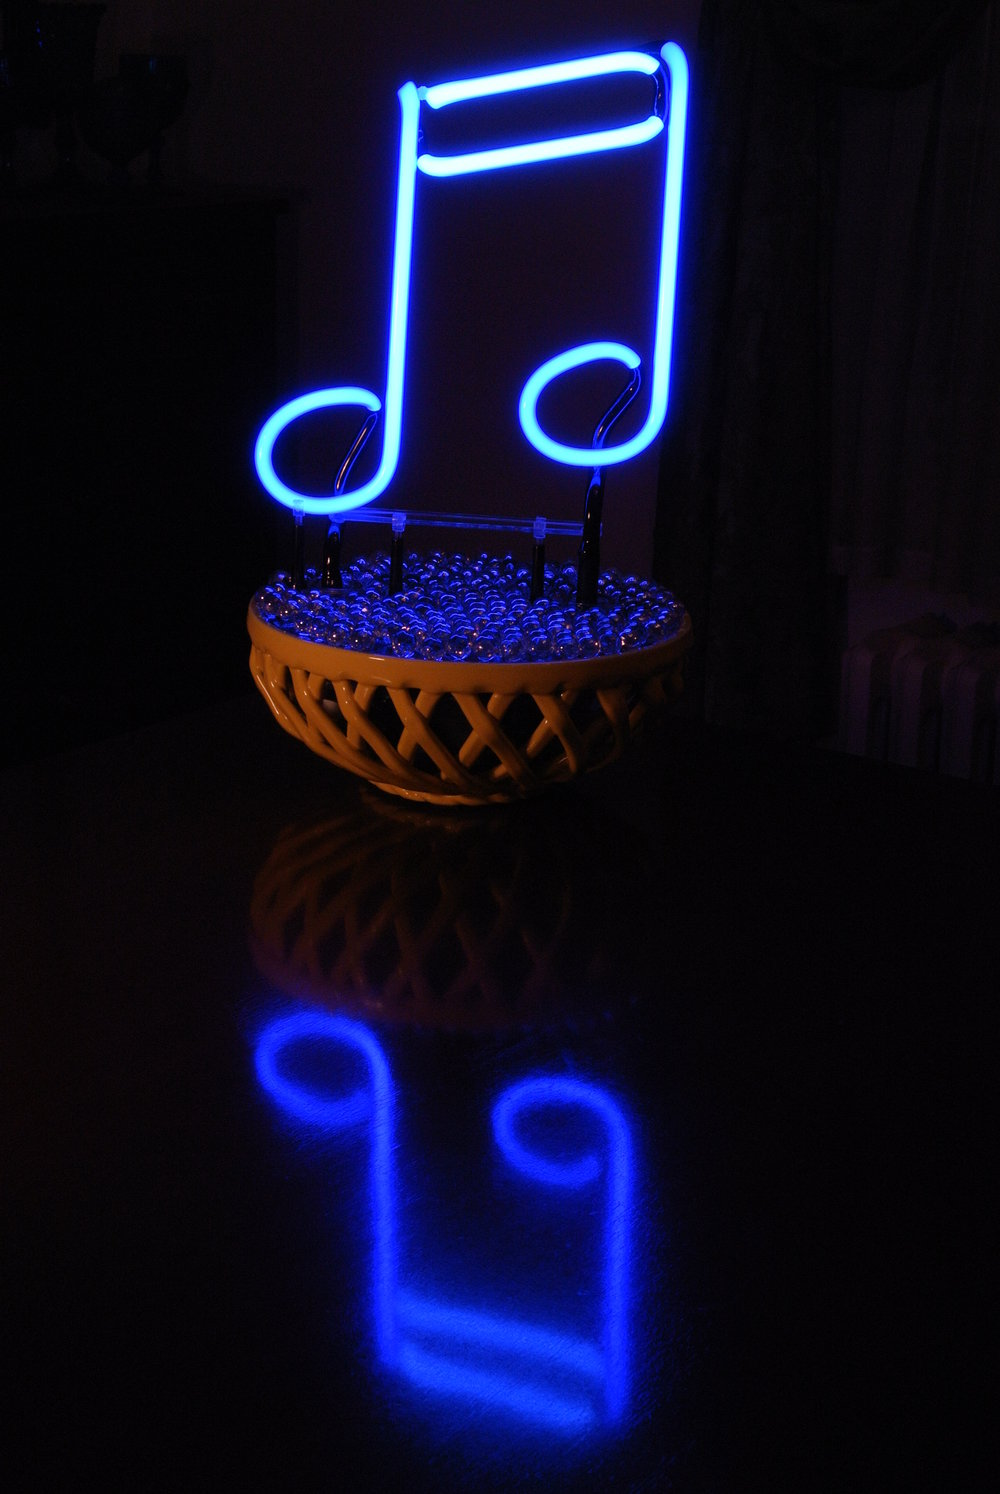 """BLUE NOTES"" Neon Light Sculpture by John Barton - BartonNeonMagic.com"